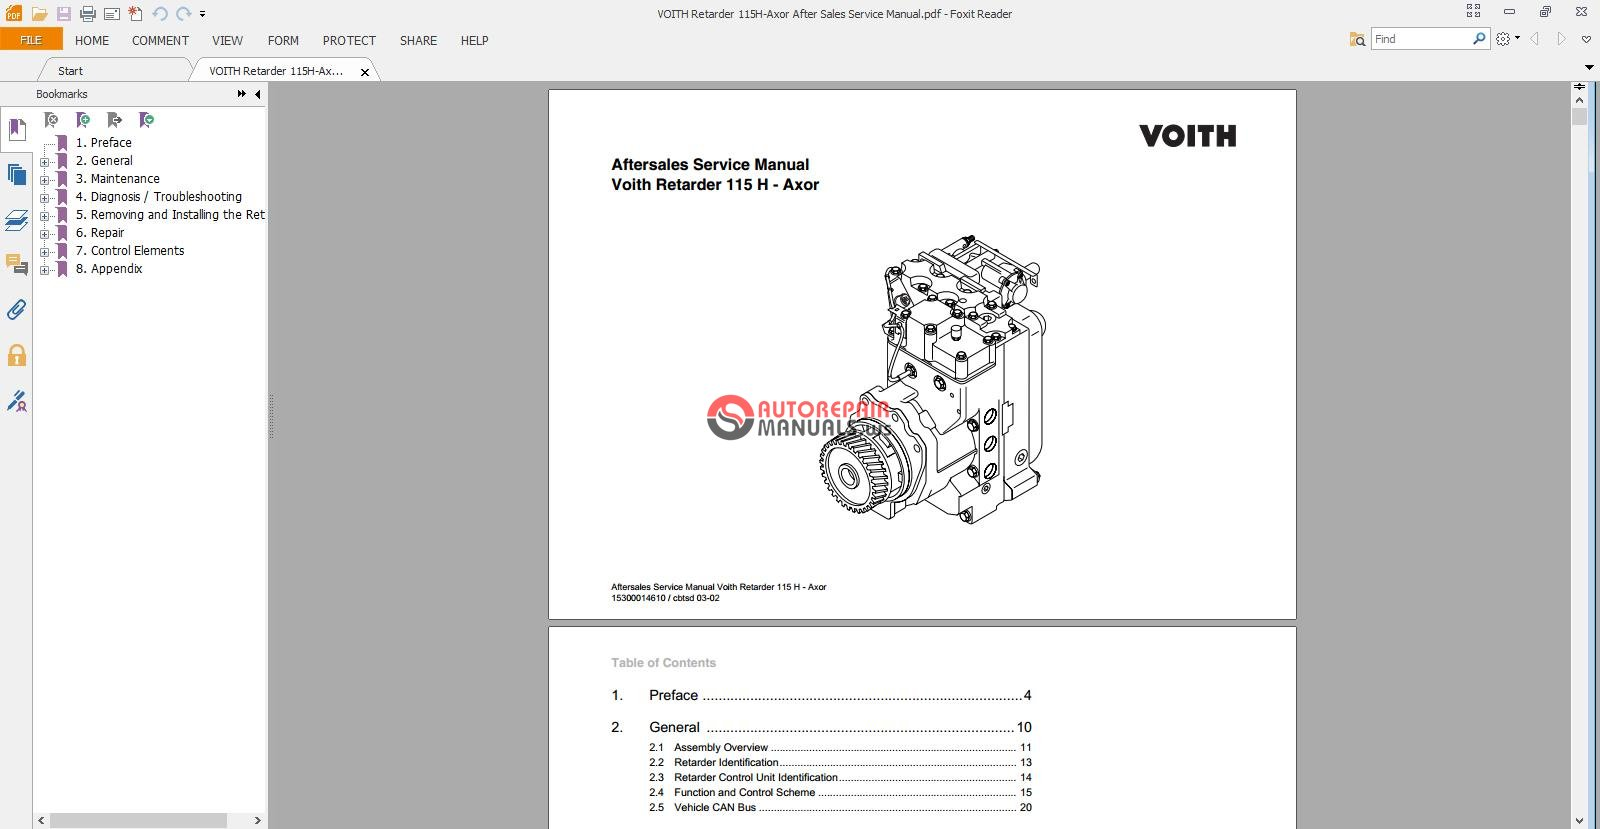 VOITH Retarder 115H-Axor After Sales Service Manual | Auto